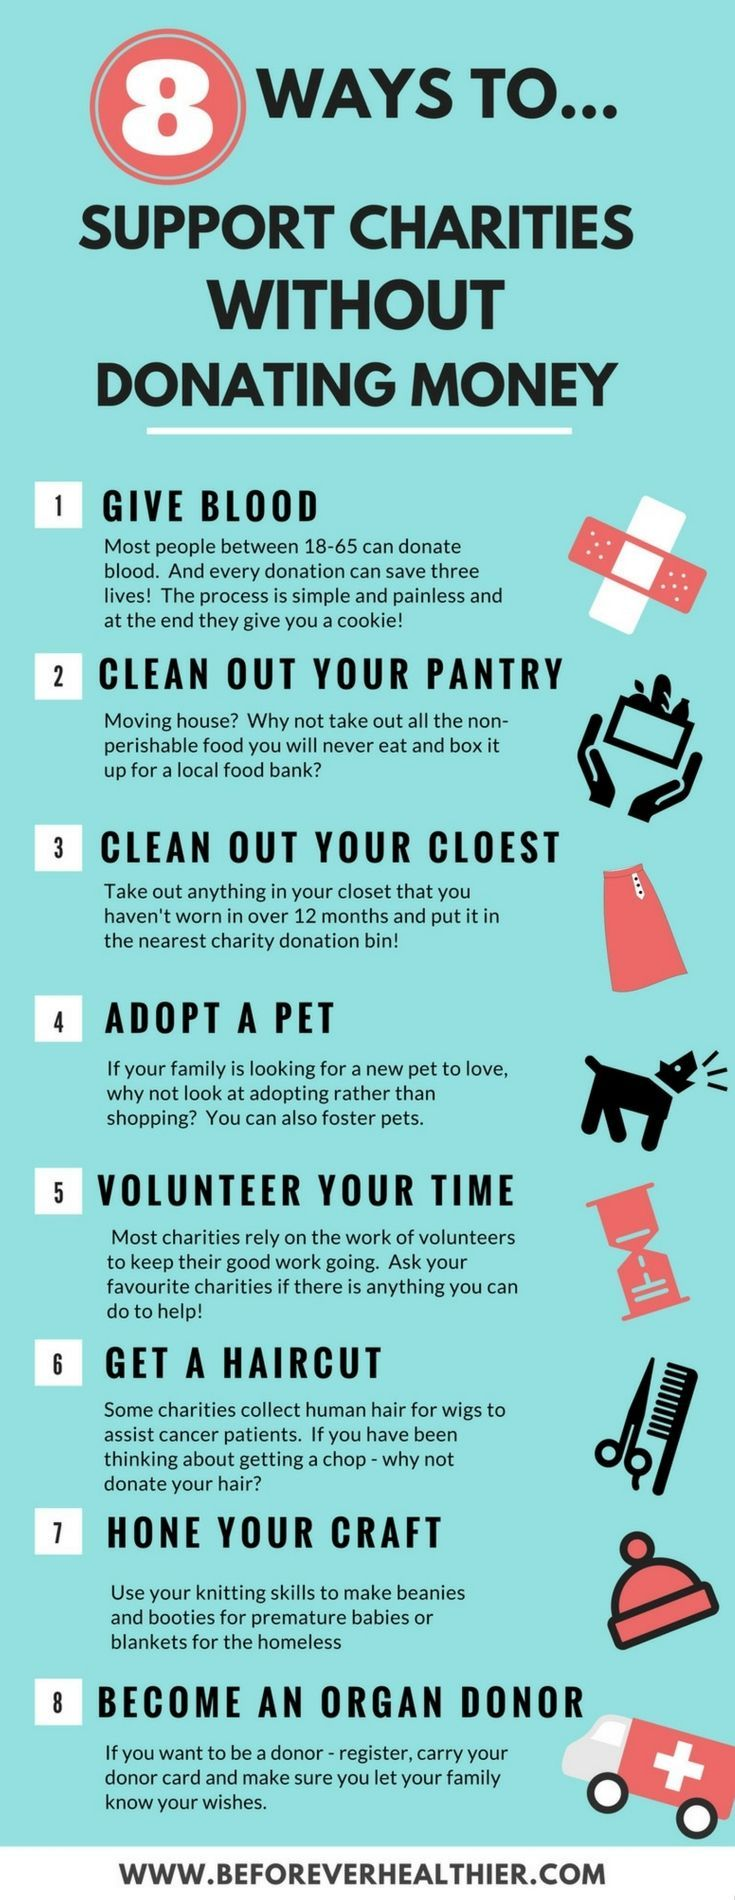 8 Ways To Support Charities Without Donating Money Charity Support Charity Work Ideas Charity Work Keep track of charitable donations